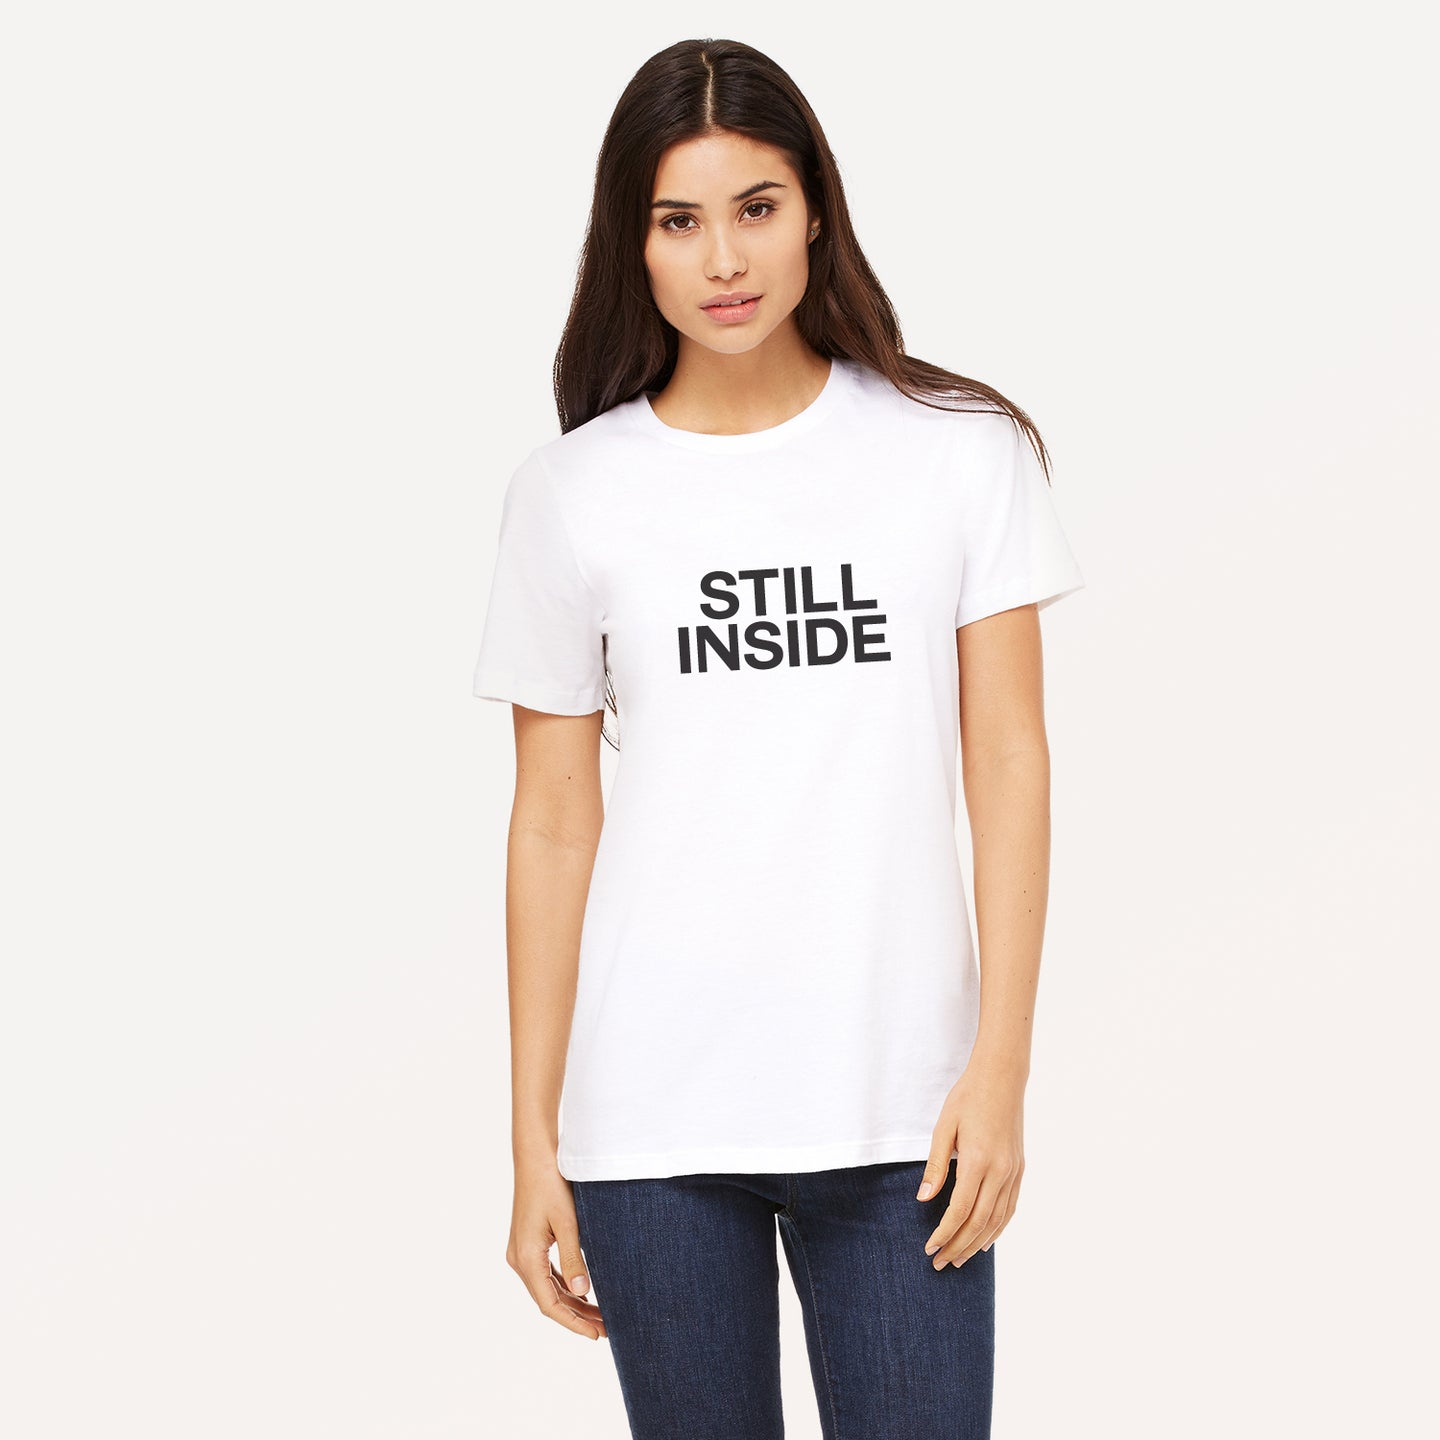 Still Inside graphic screenprinted in black on a white unisex relaxed cotton jersey t-shirt.